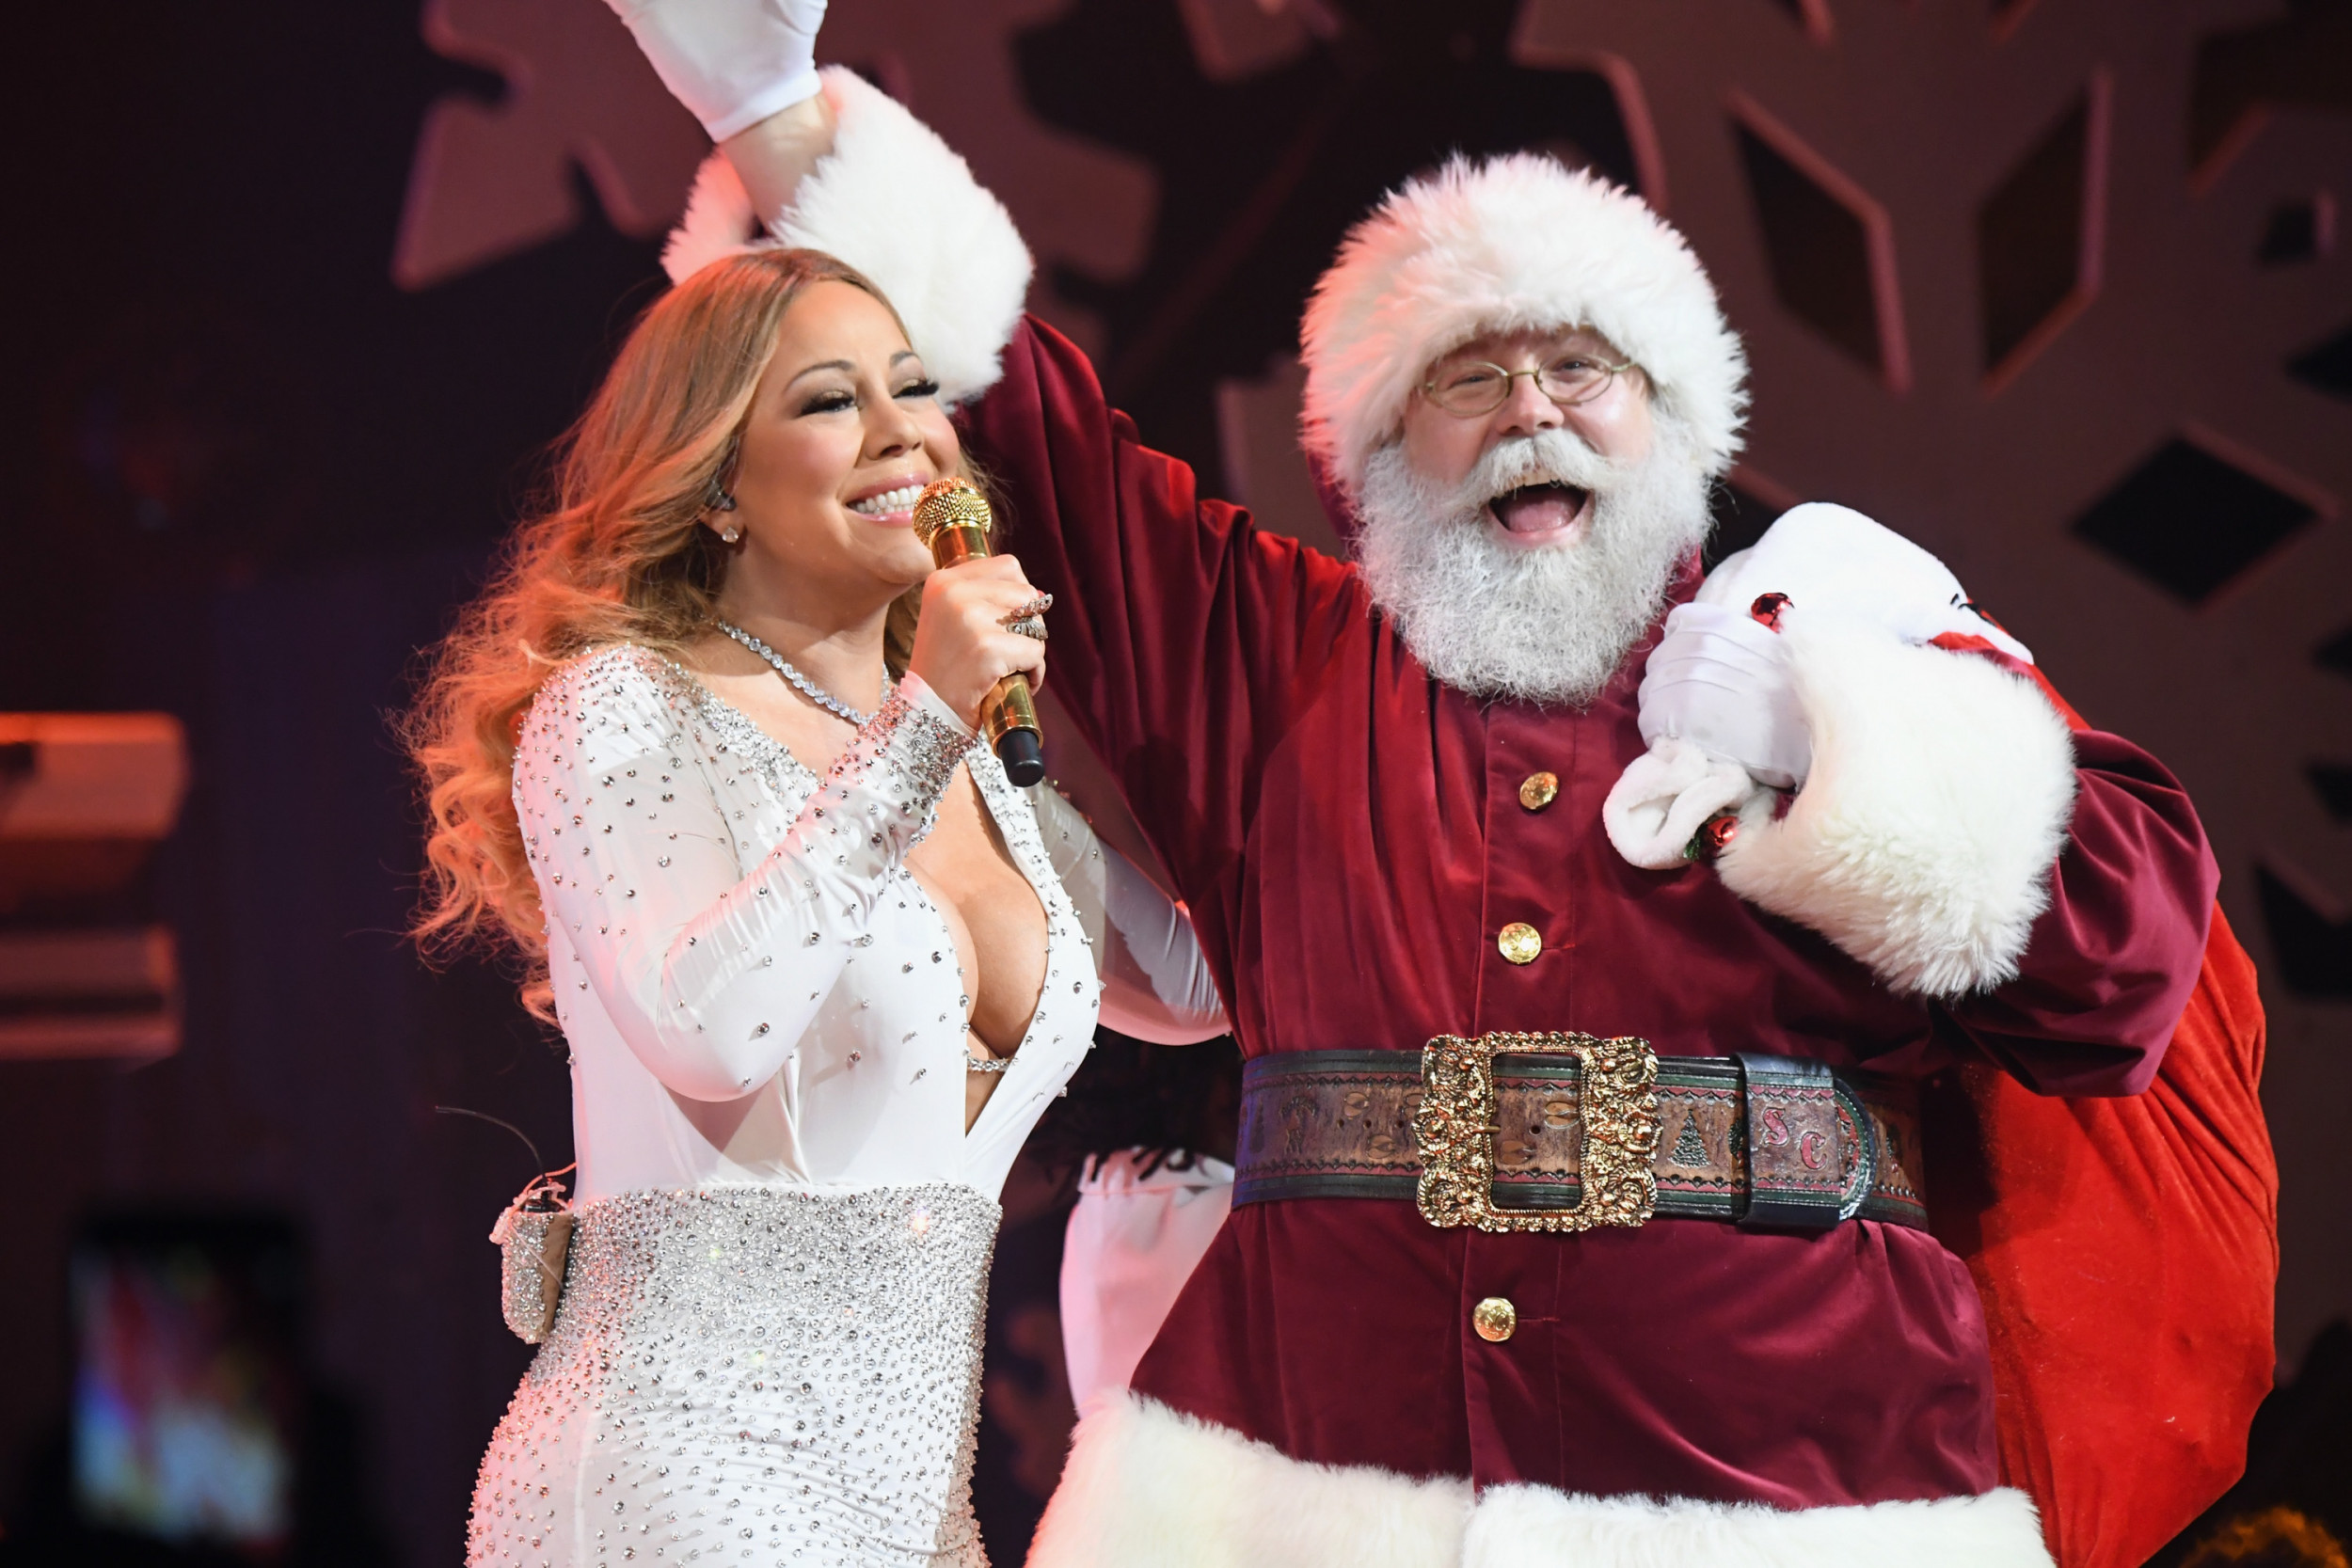 Christmas Music The Top 20 Best Selling Christmas Songs Of All Time